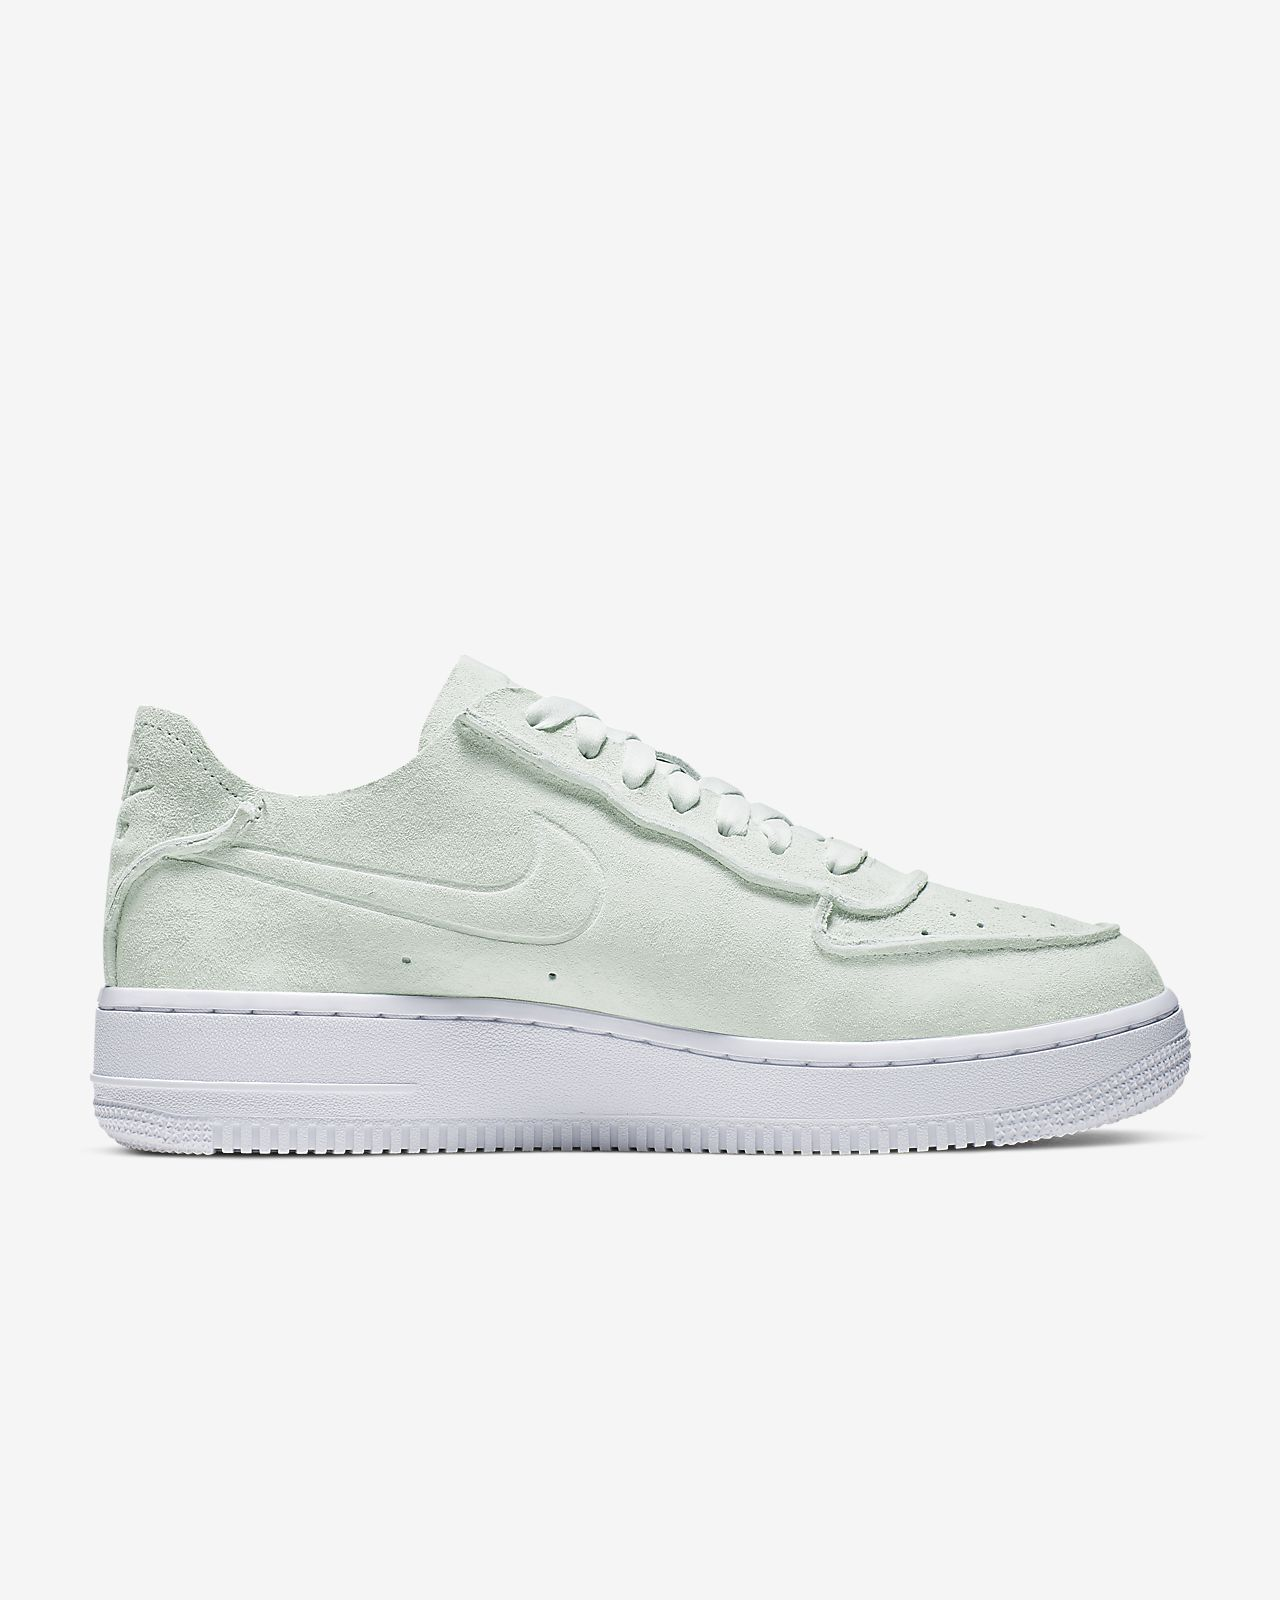 best service 7a98c 5f798 Nike Air Force 1 '07 Deconstructed Women's Shoe